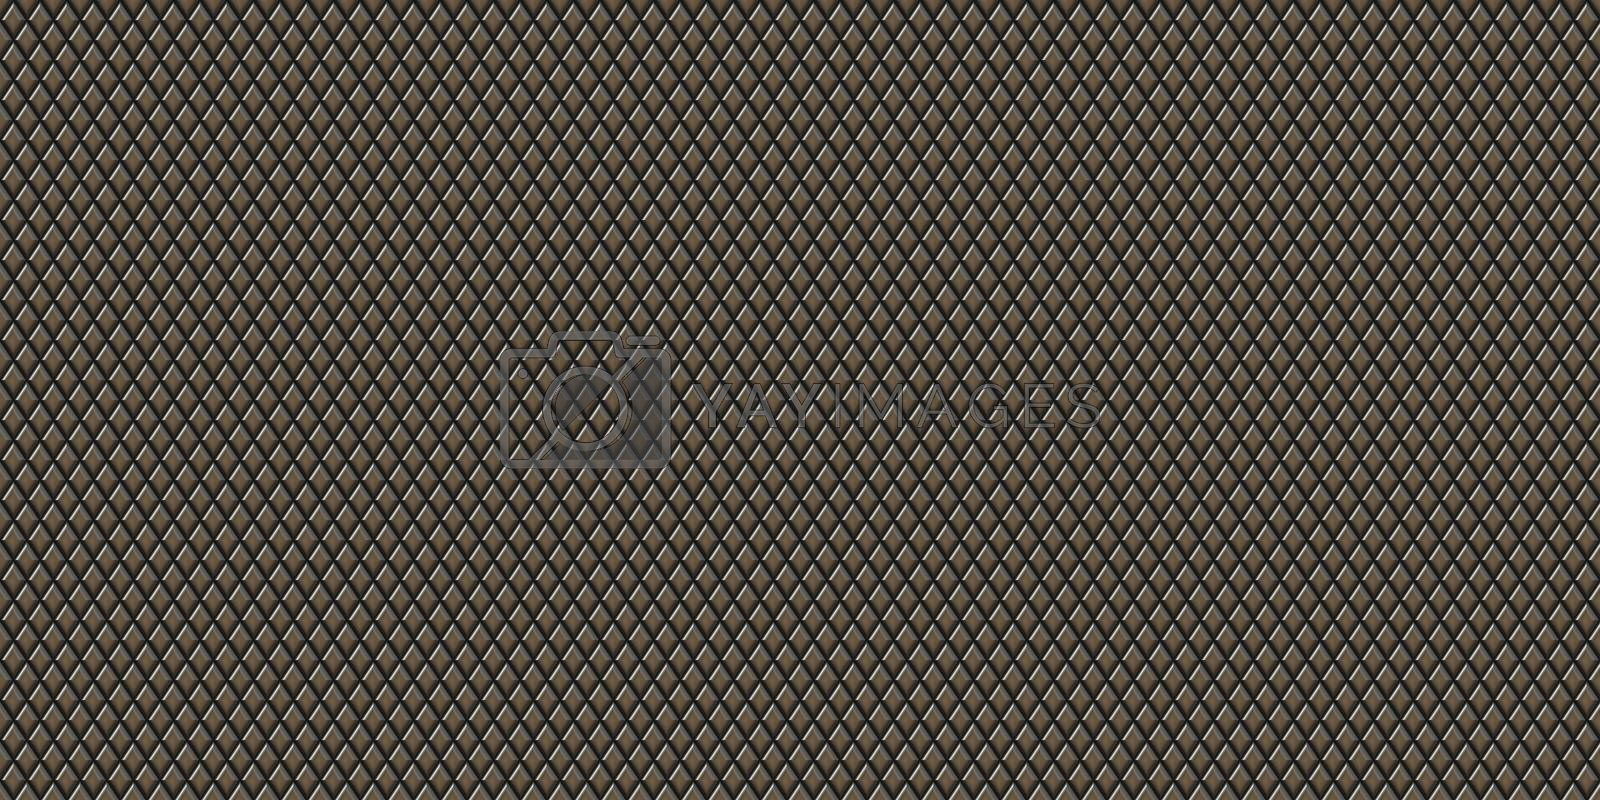 Metal rhombus pattern surface. Knurling touch texture. Knurl contact surface background.